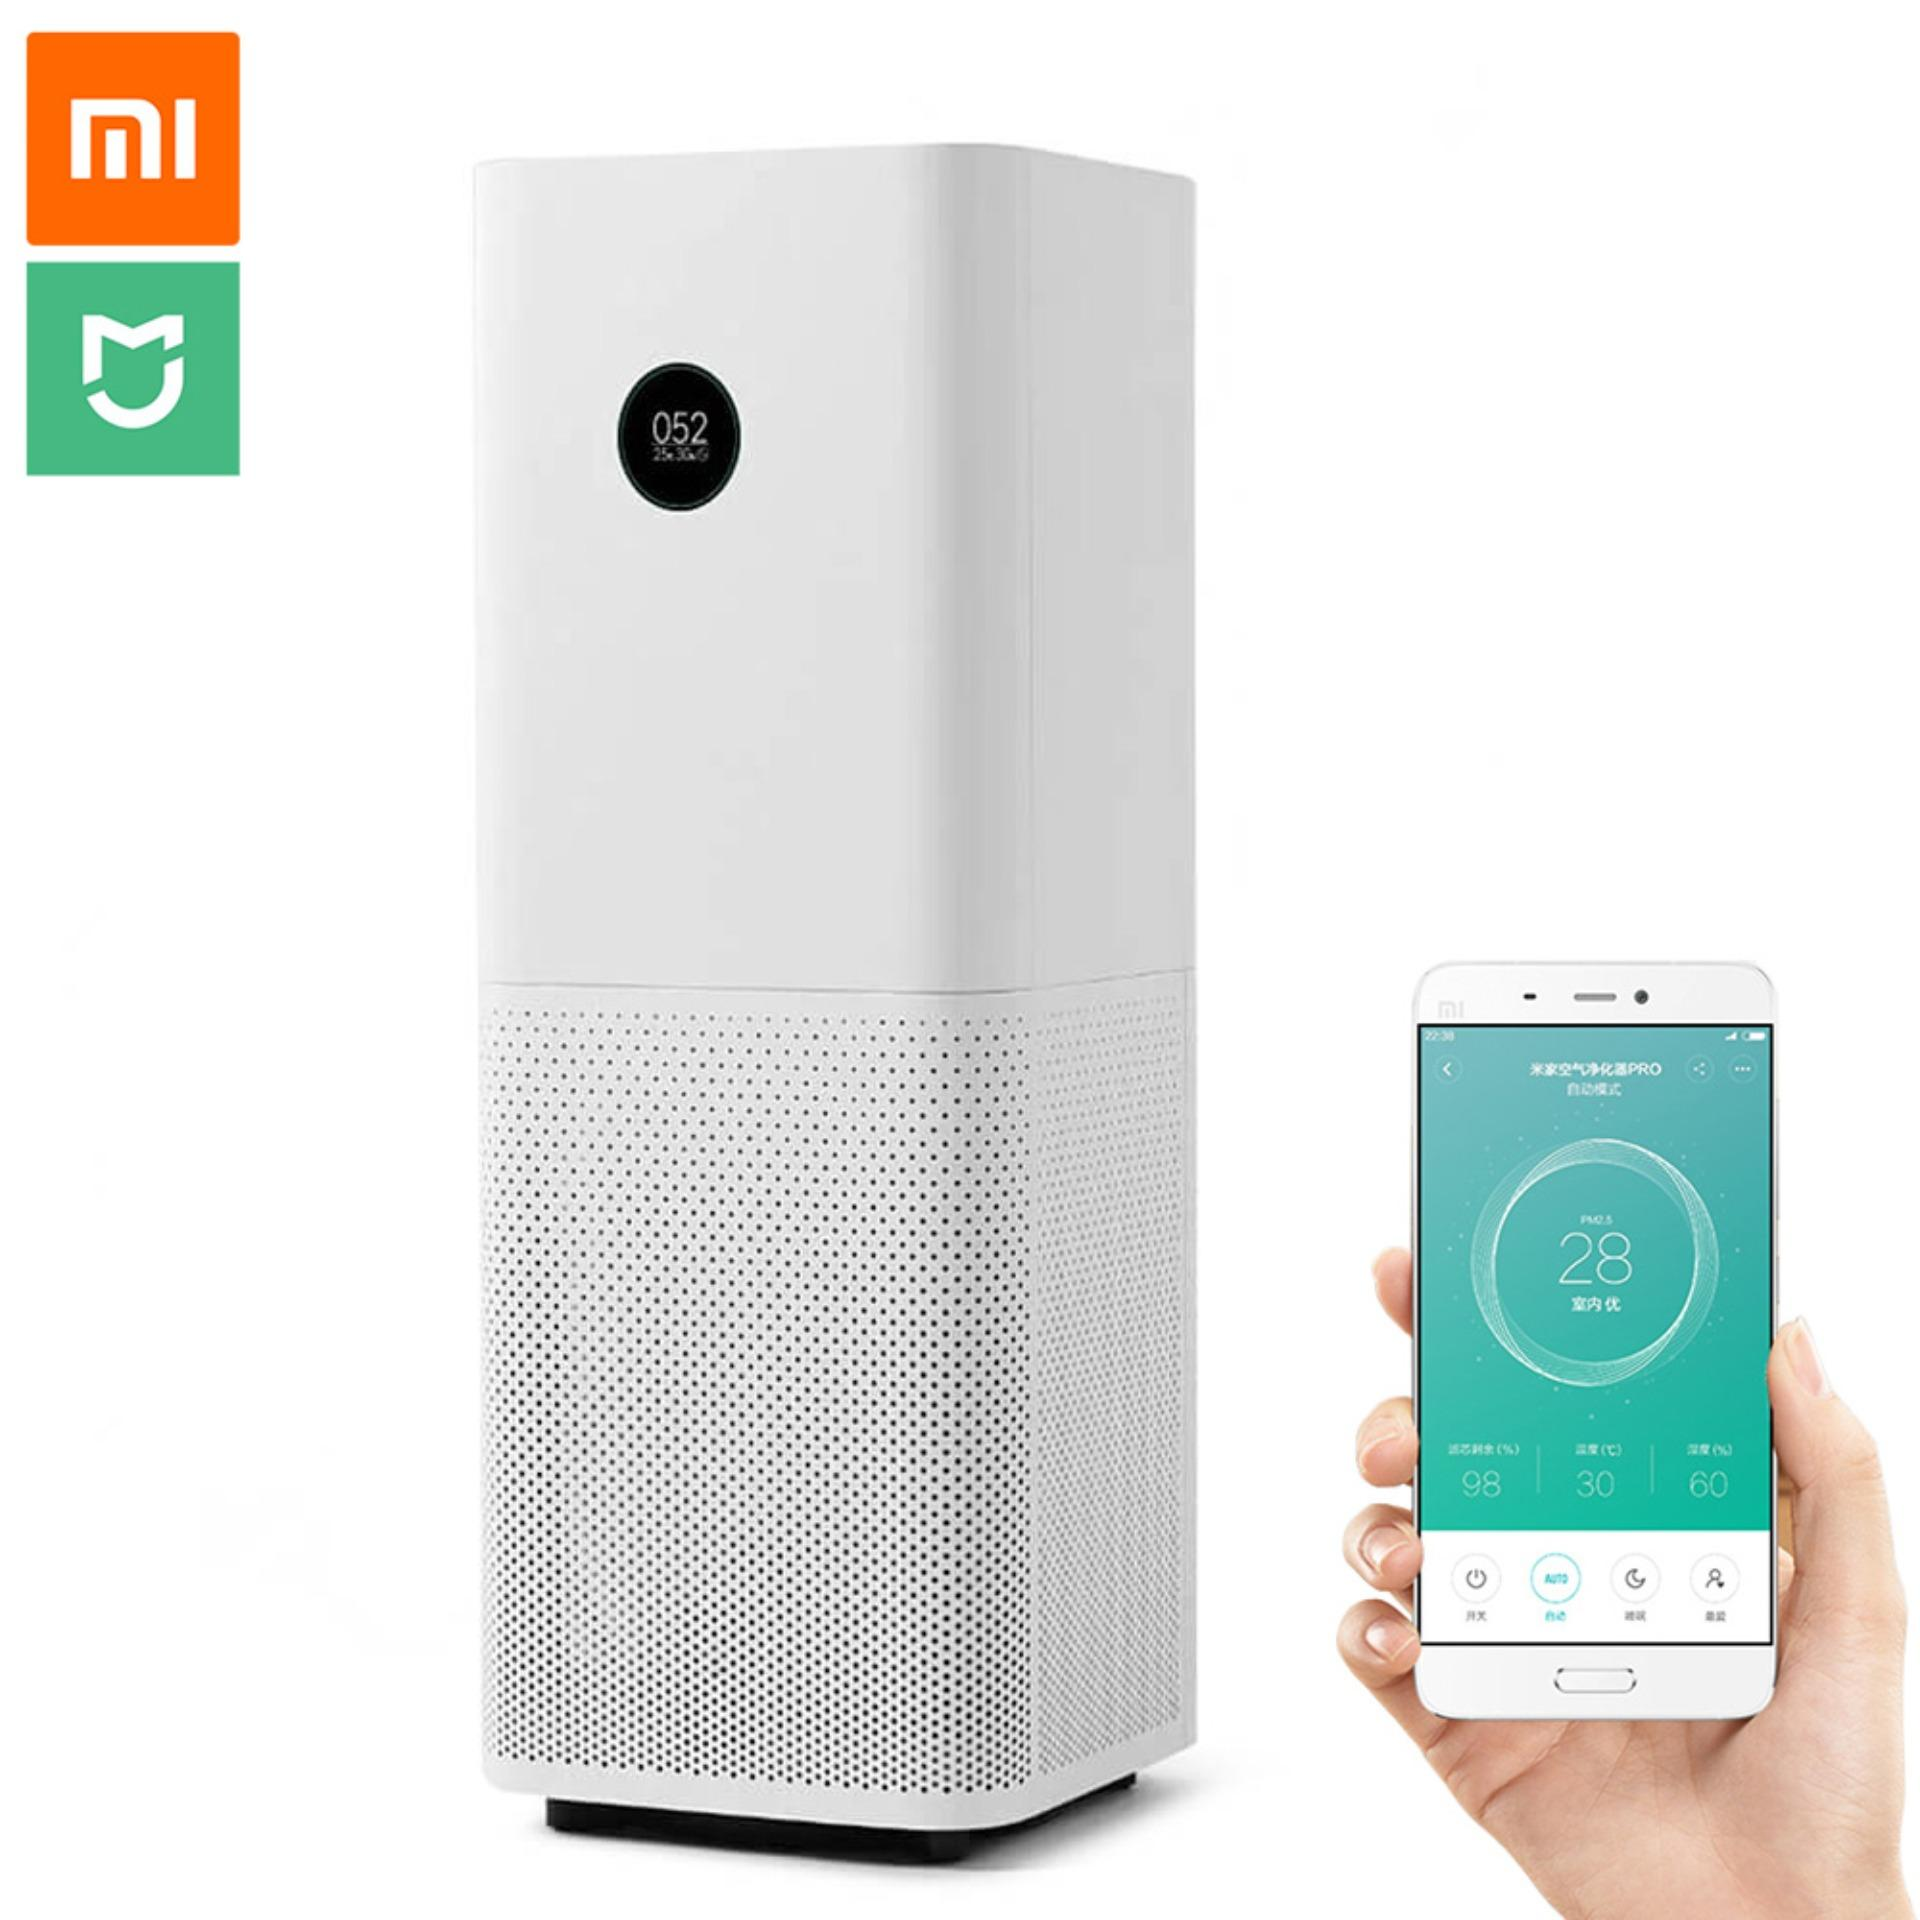 Xiaomi Mi Air Purifier Pro OLED Display, Smart Mi Home App Control, New Aerodynamic